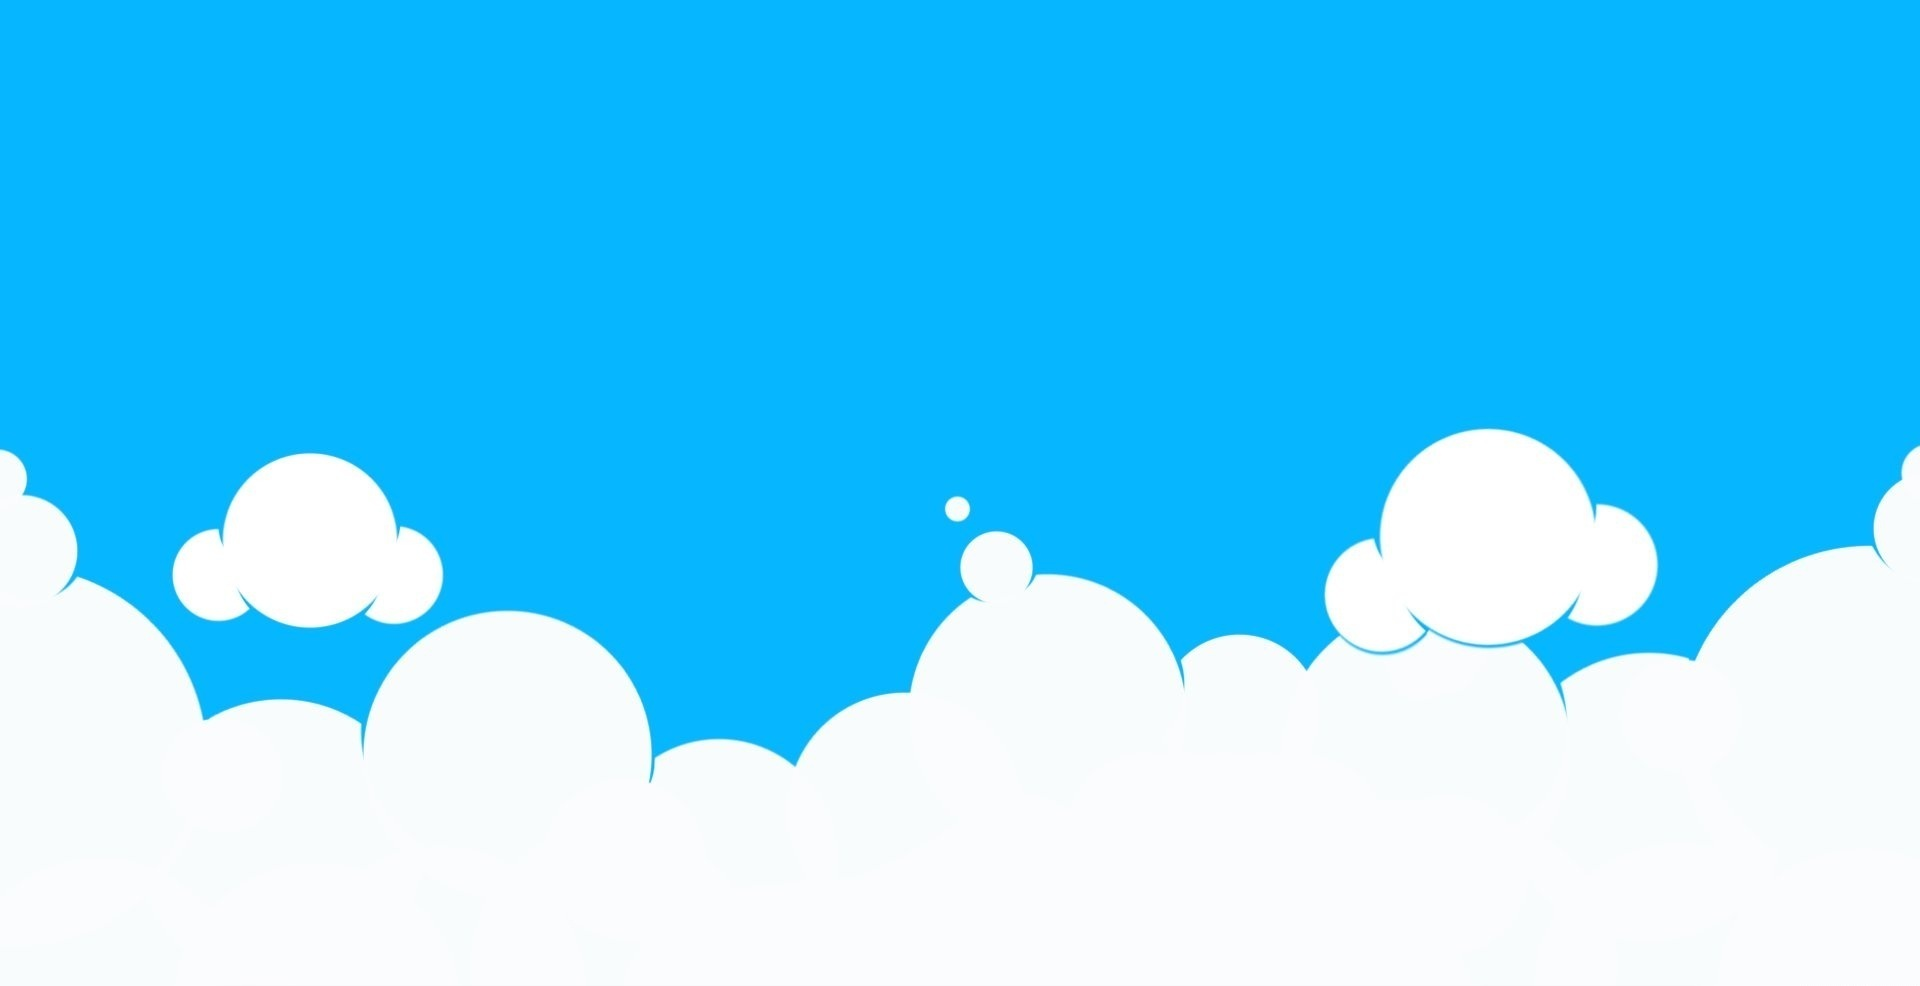 Bg clouds clipart picture freeuse stock sky, texture, clouds, download photos, background, sky cloud ... picture freeuse stock